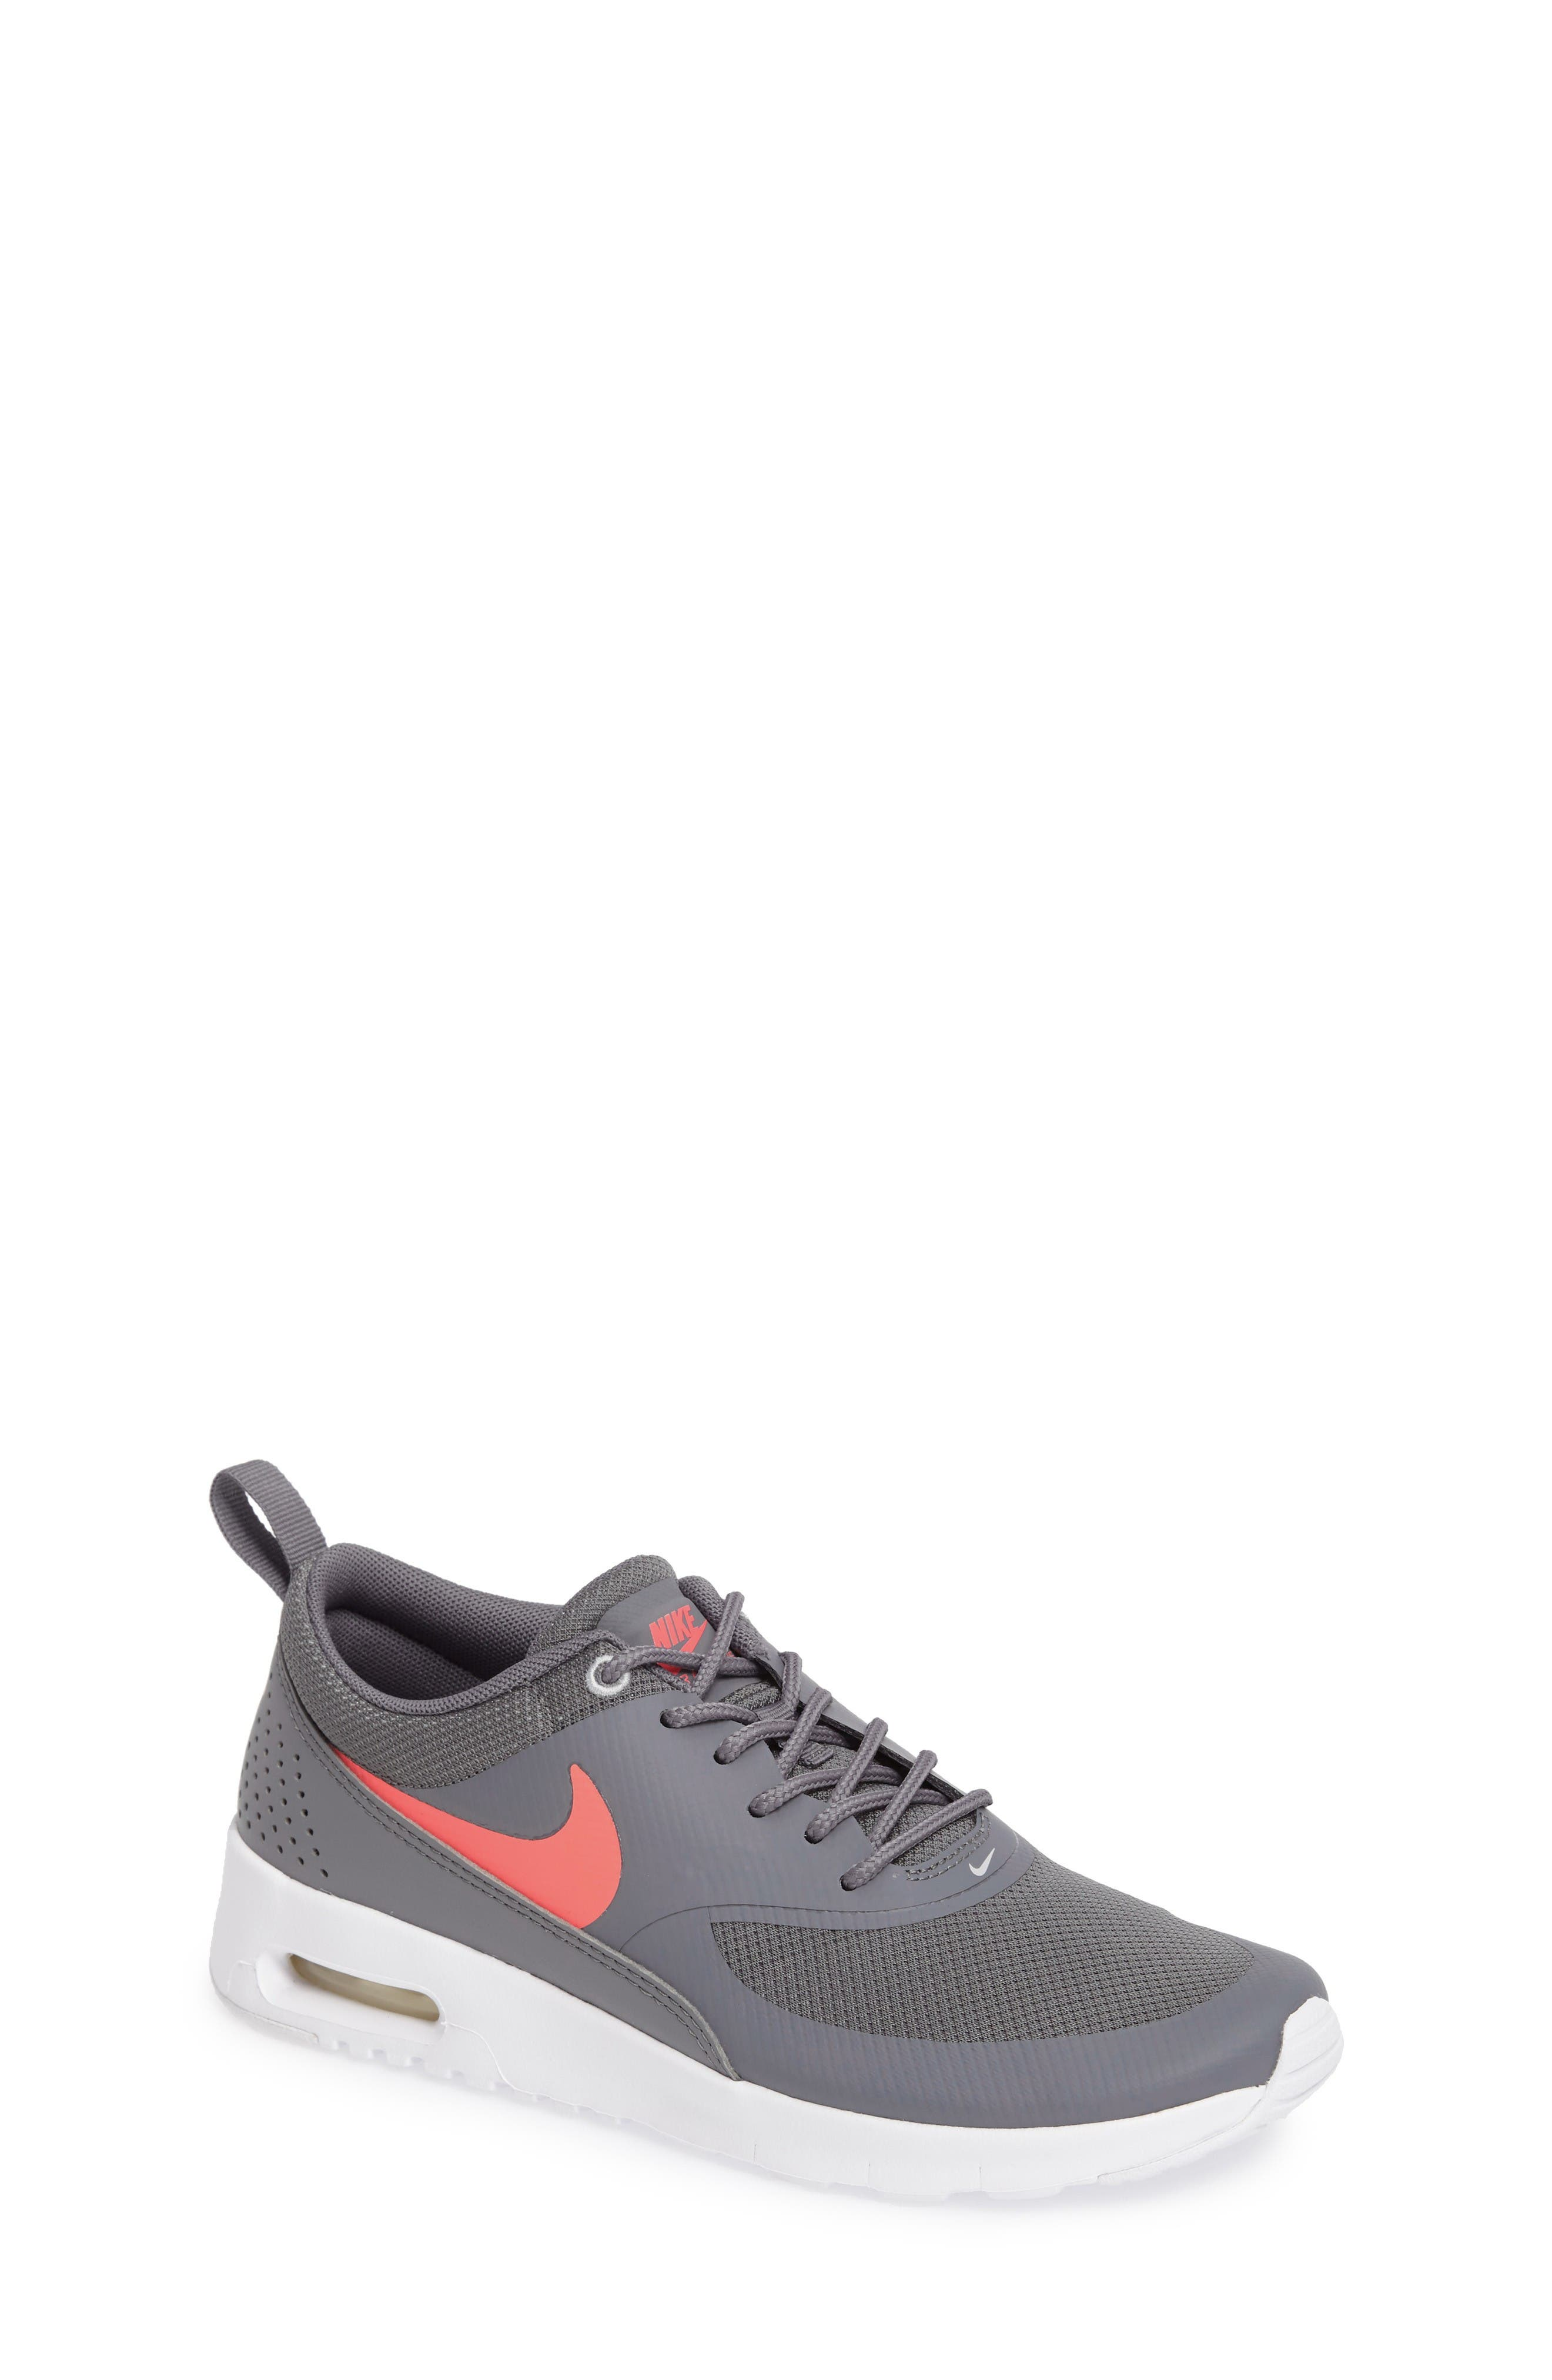 Nike Air Max Thea Sneaker (Walker, Toddler, Little Kid & Big Kid)